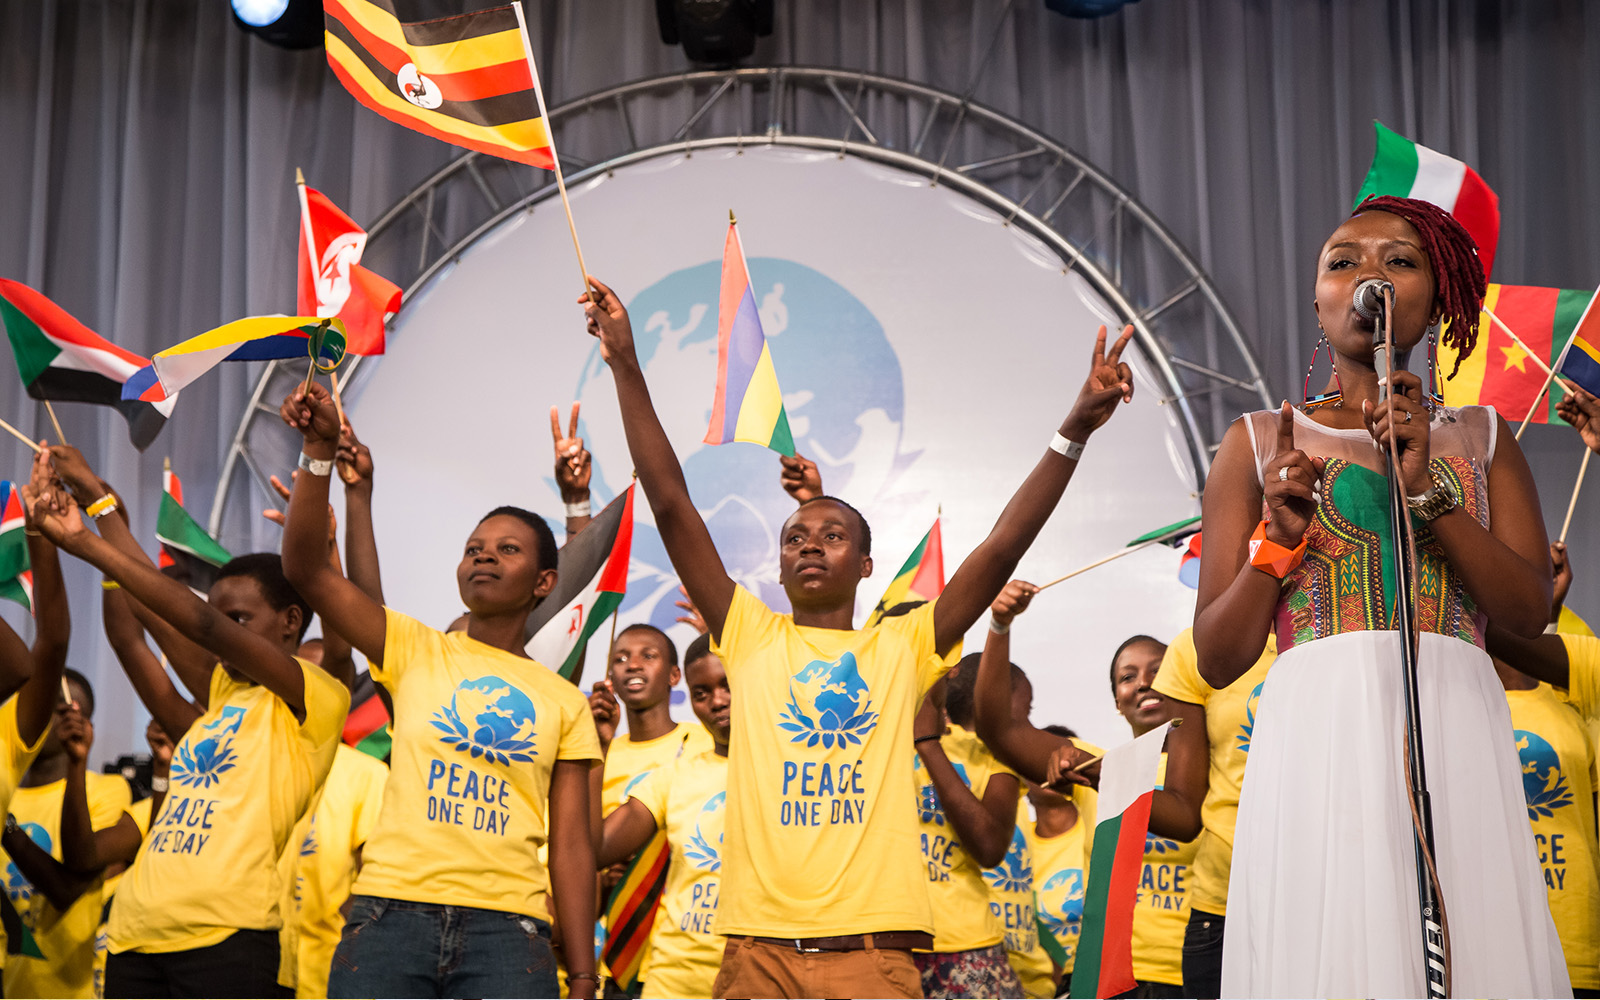 Photo of a Peace Day Celebration on stage